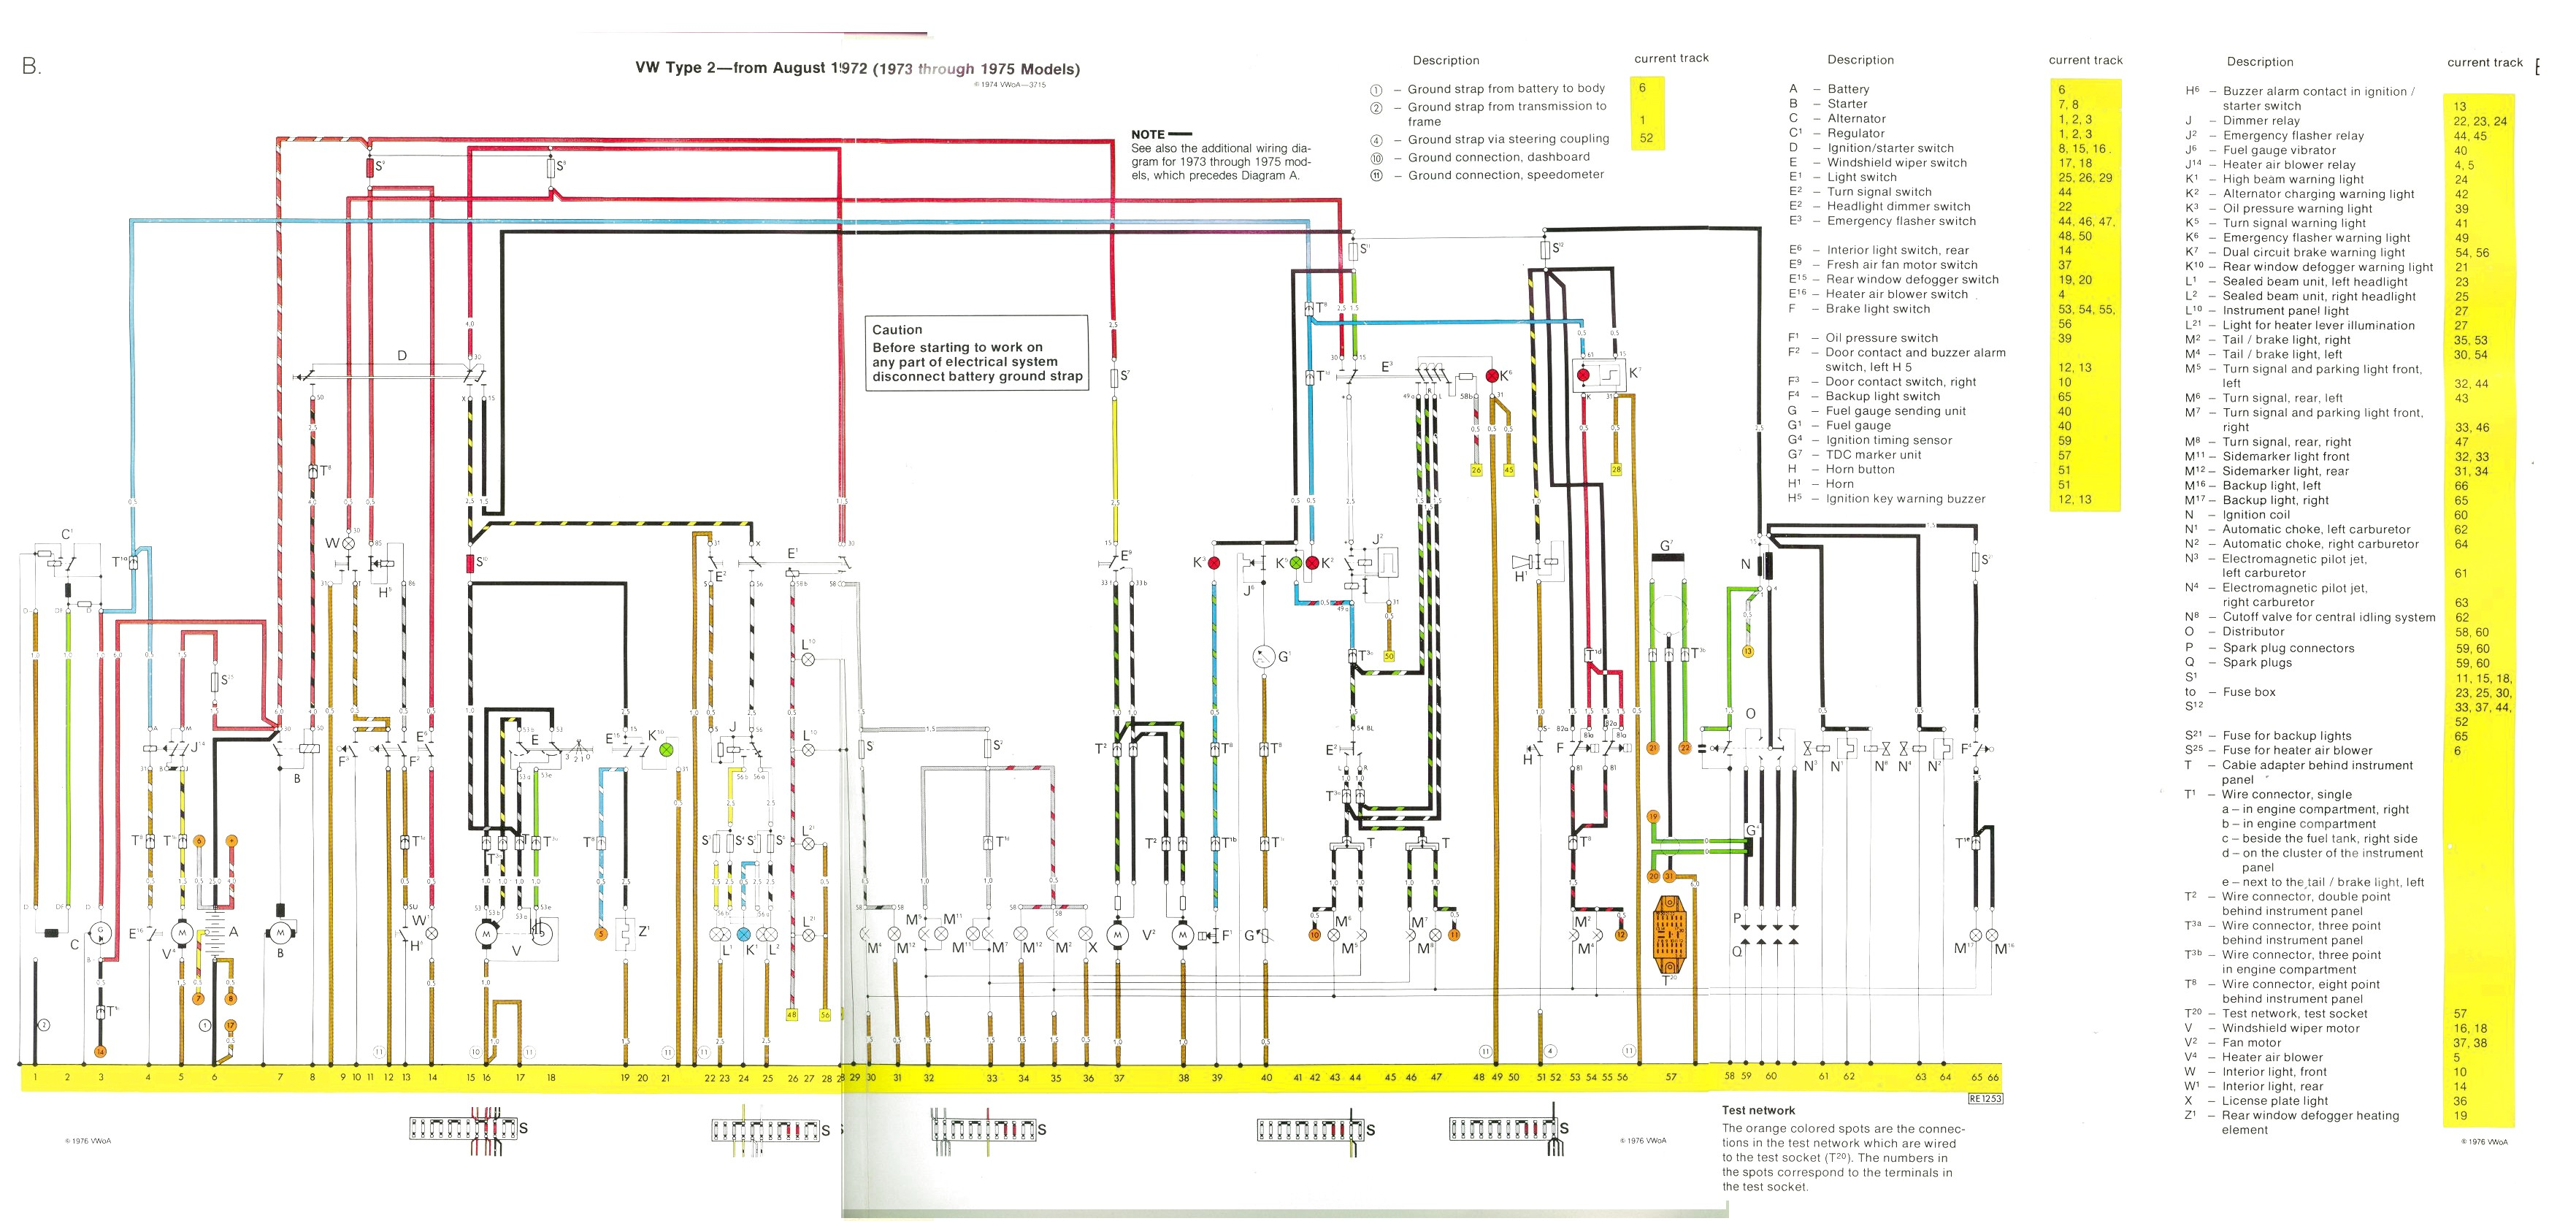 bus 73 75 vintagebus com vw bus (and other) wiring diagrams 1973 vw wiring diagram at eliteediting.co